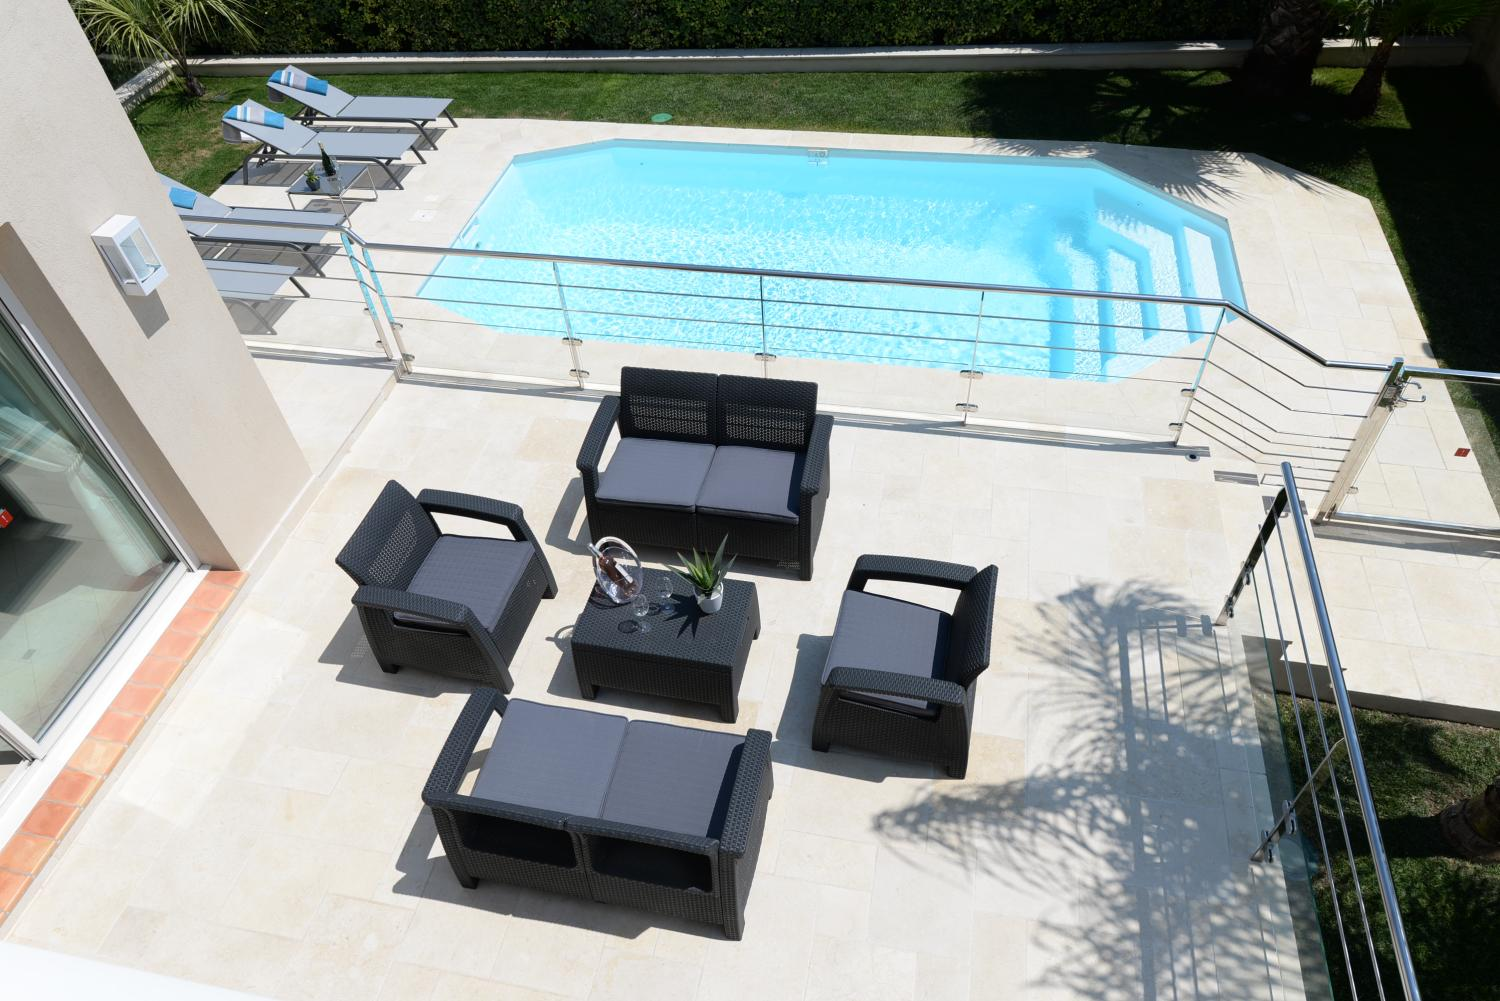 heated pool townhouse on the cote d'azur